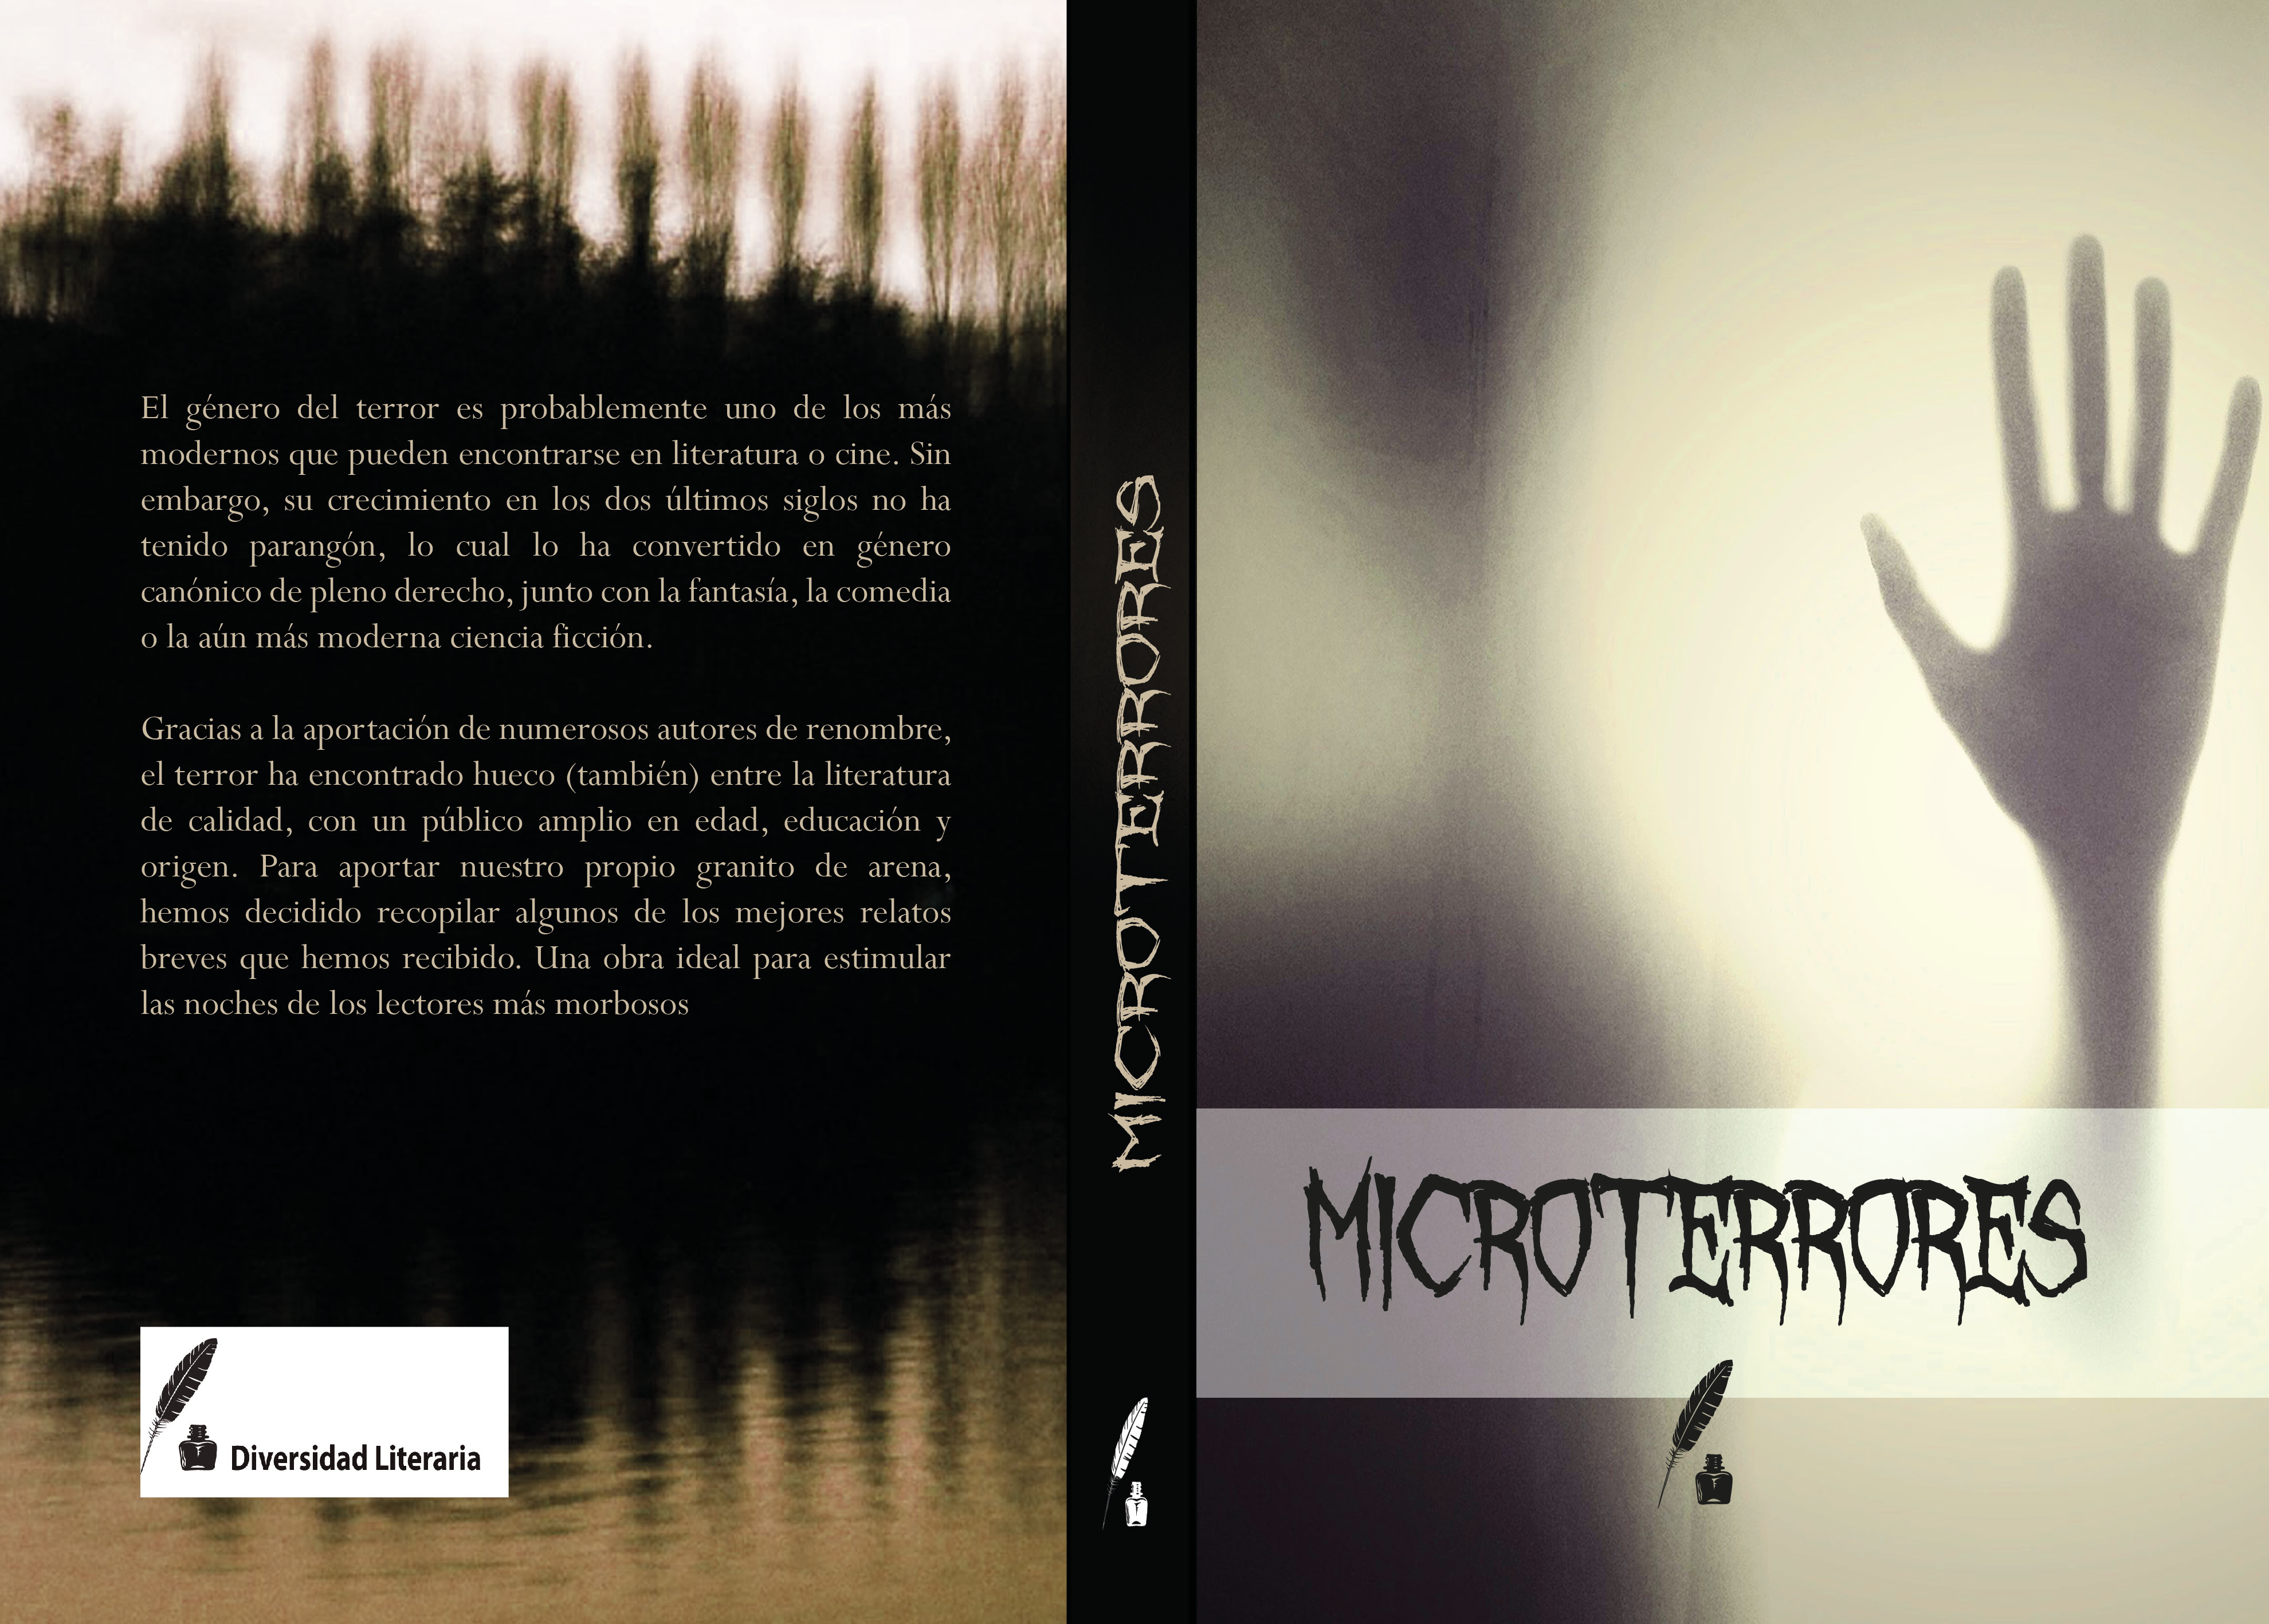 microterrores.jpg